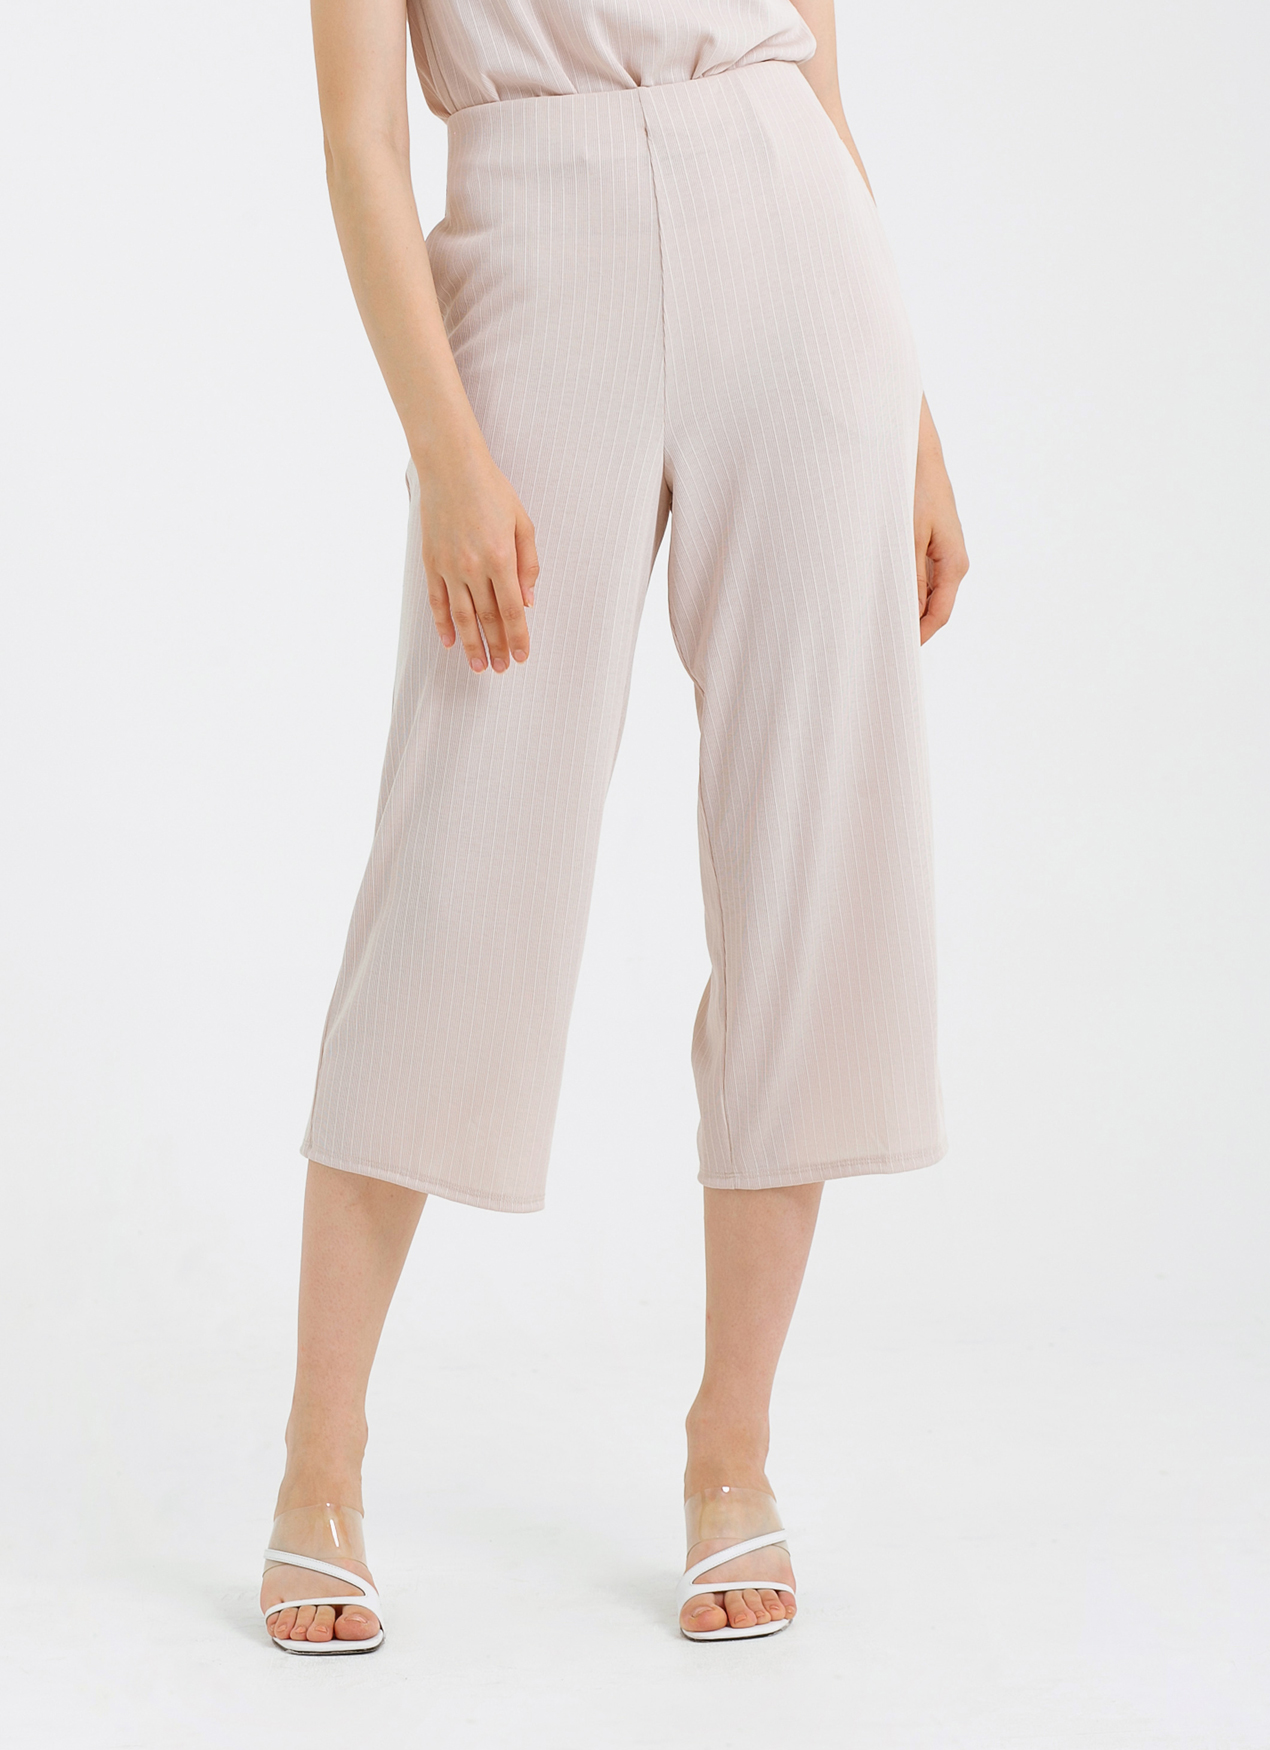 CLOTH INC Ribbed Knit Culottes - Cream